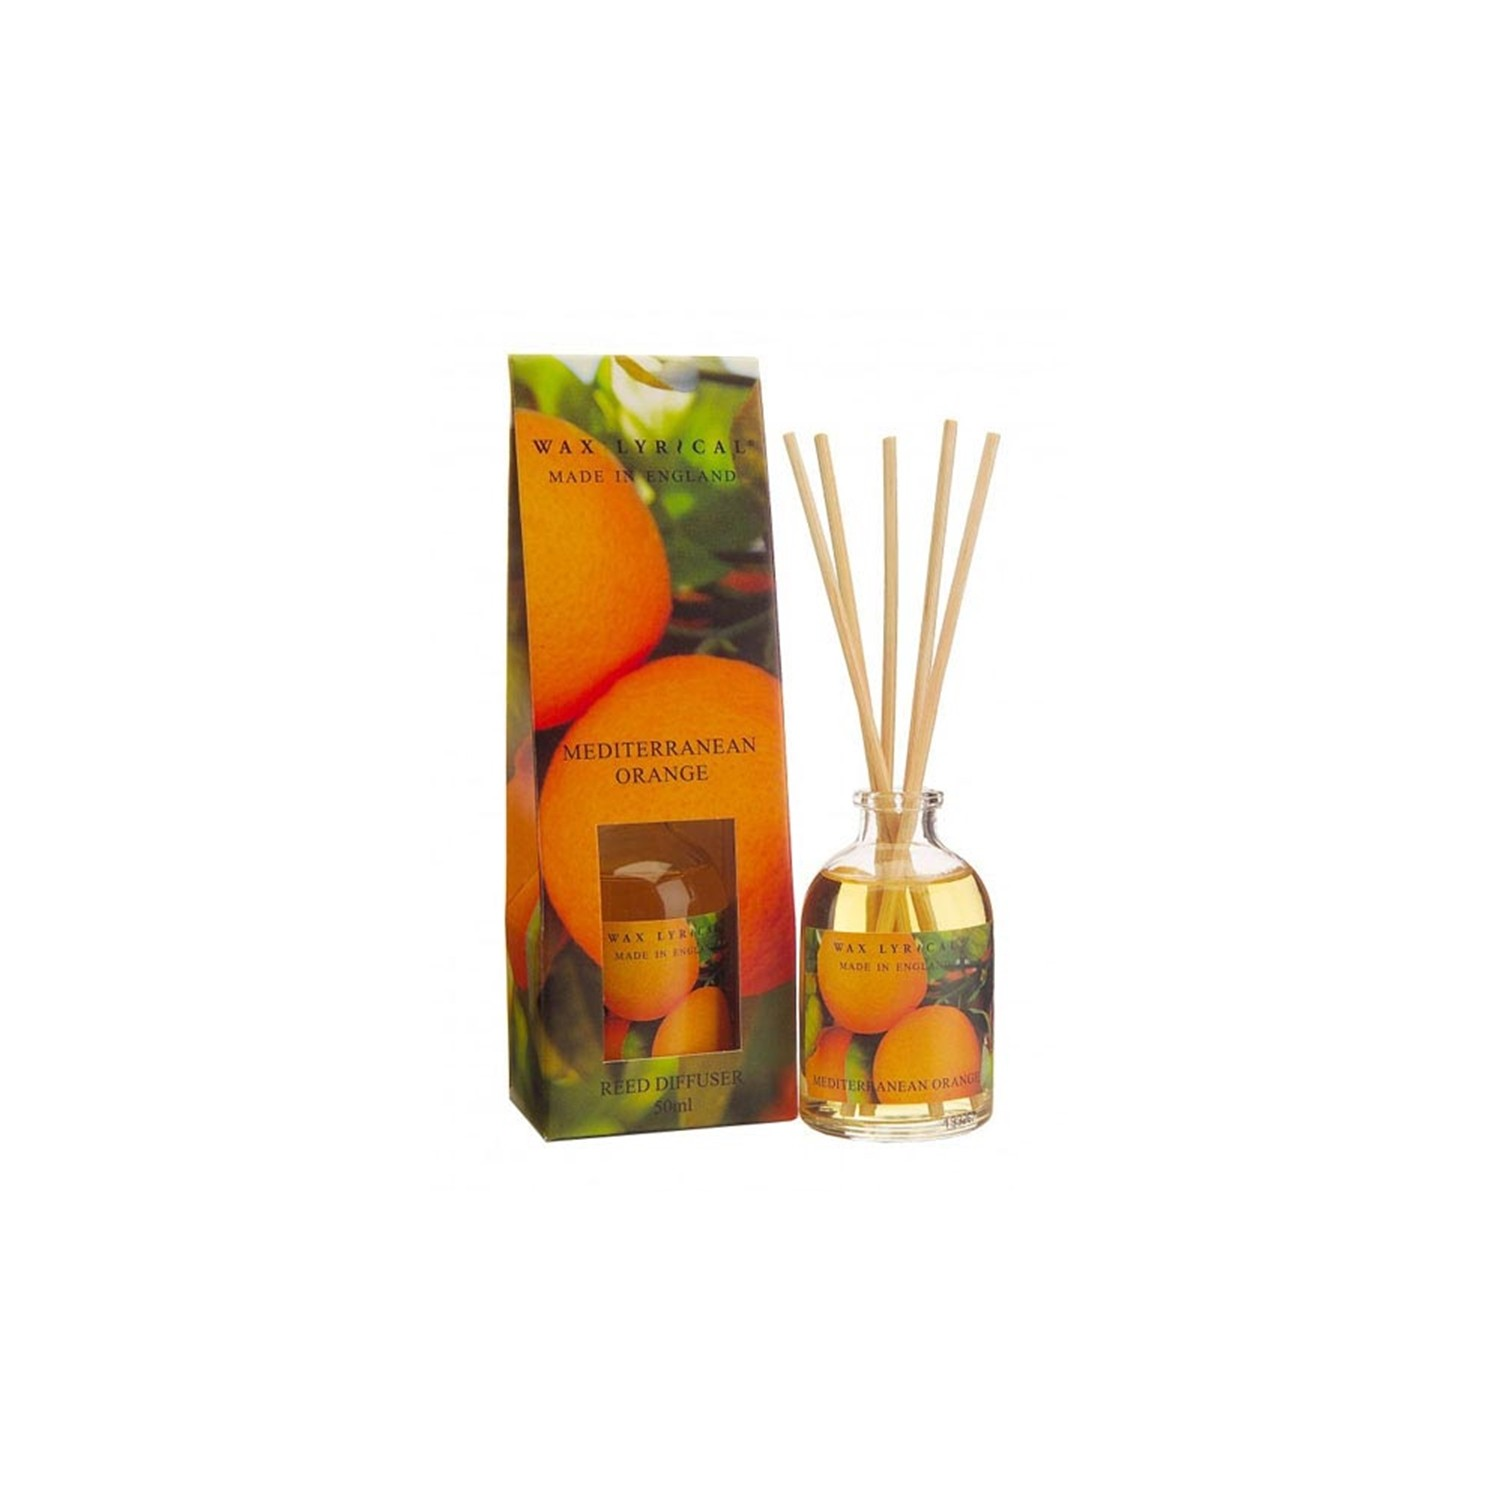 Airpure Reed Diffuser Home Collection Linen Room 30 Ml: Wax Lyrical Reed Diffuser Mediterranean Orange, 50ml